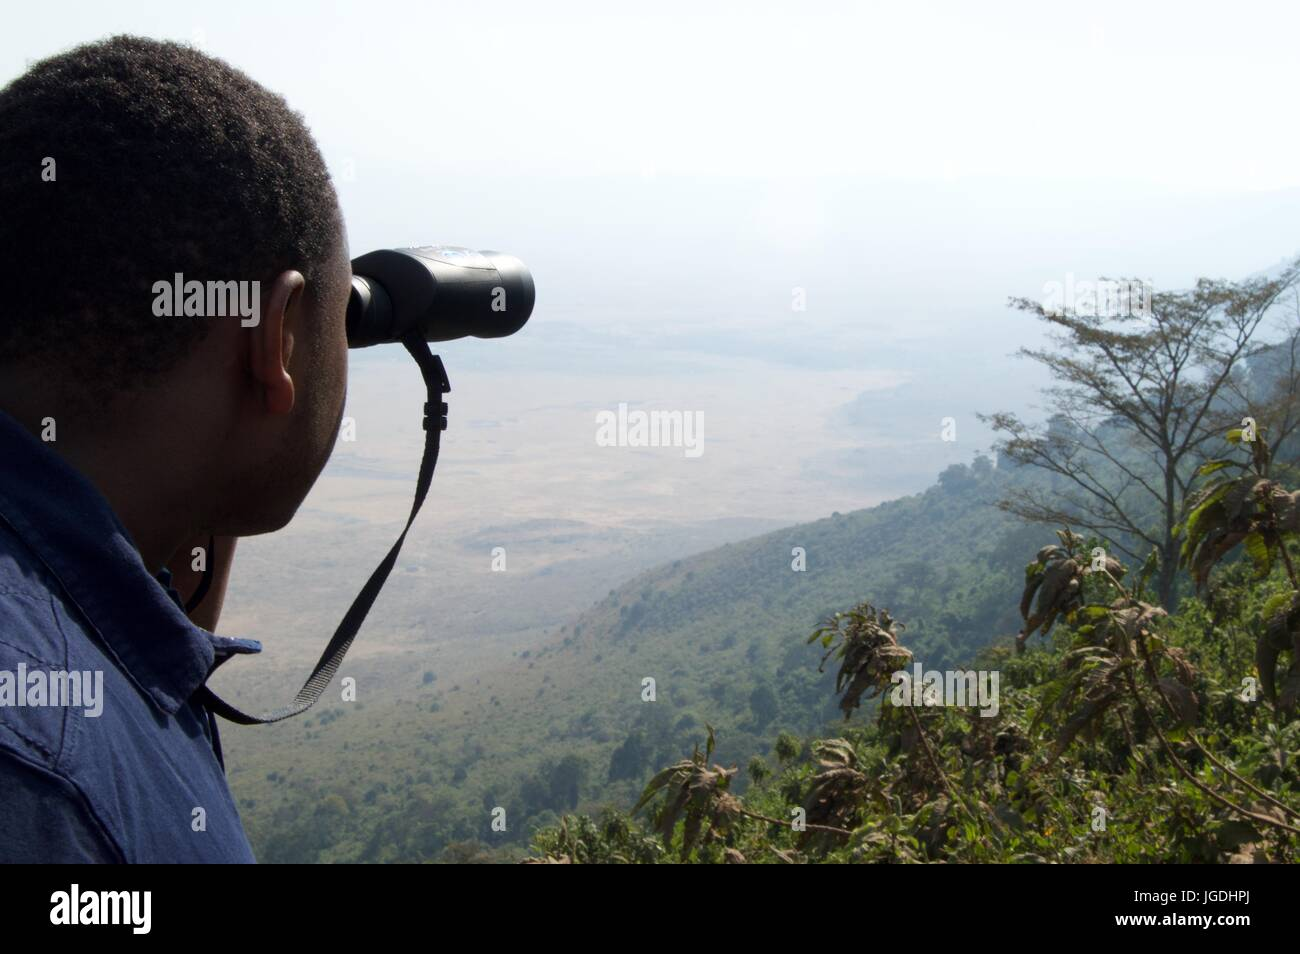 Man looks over crater rim with binoculars, Ngorongoro Crater, Tanzania - Stock Image